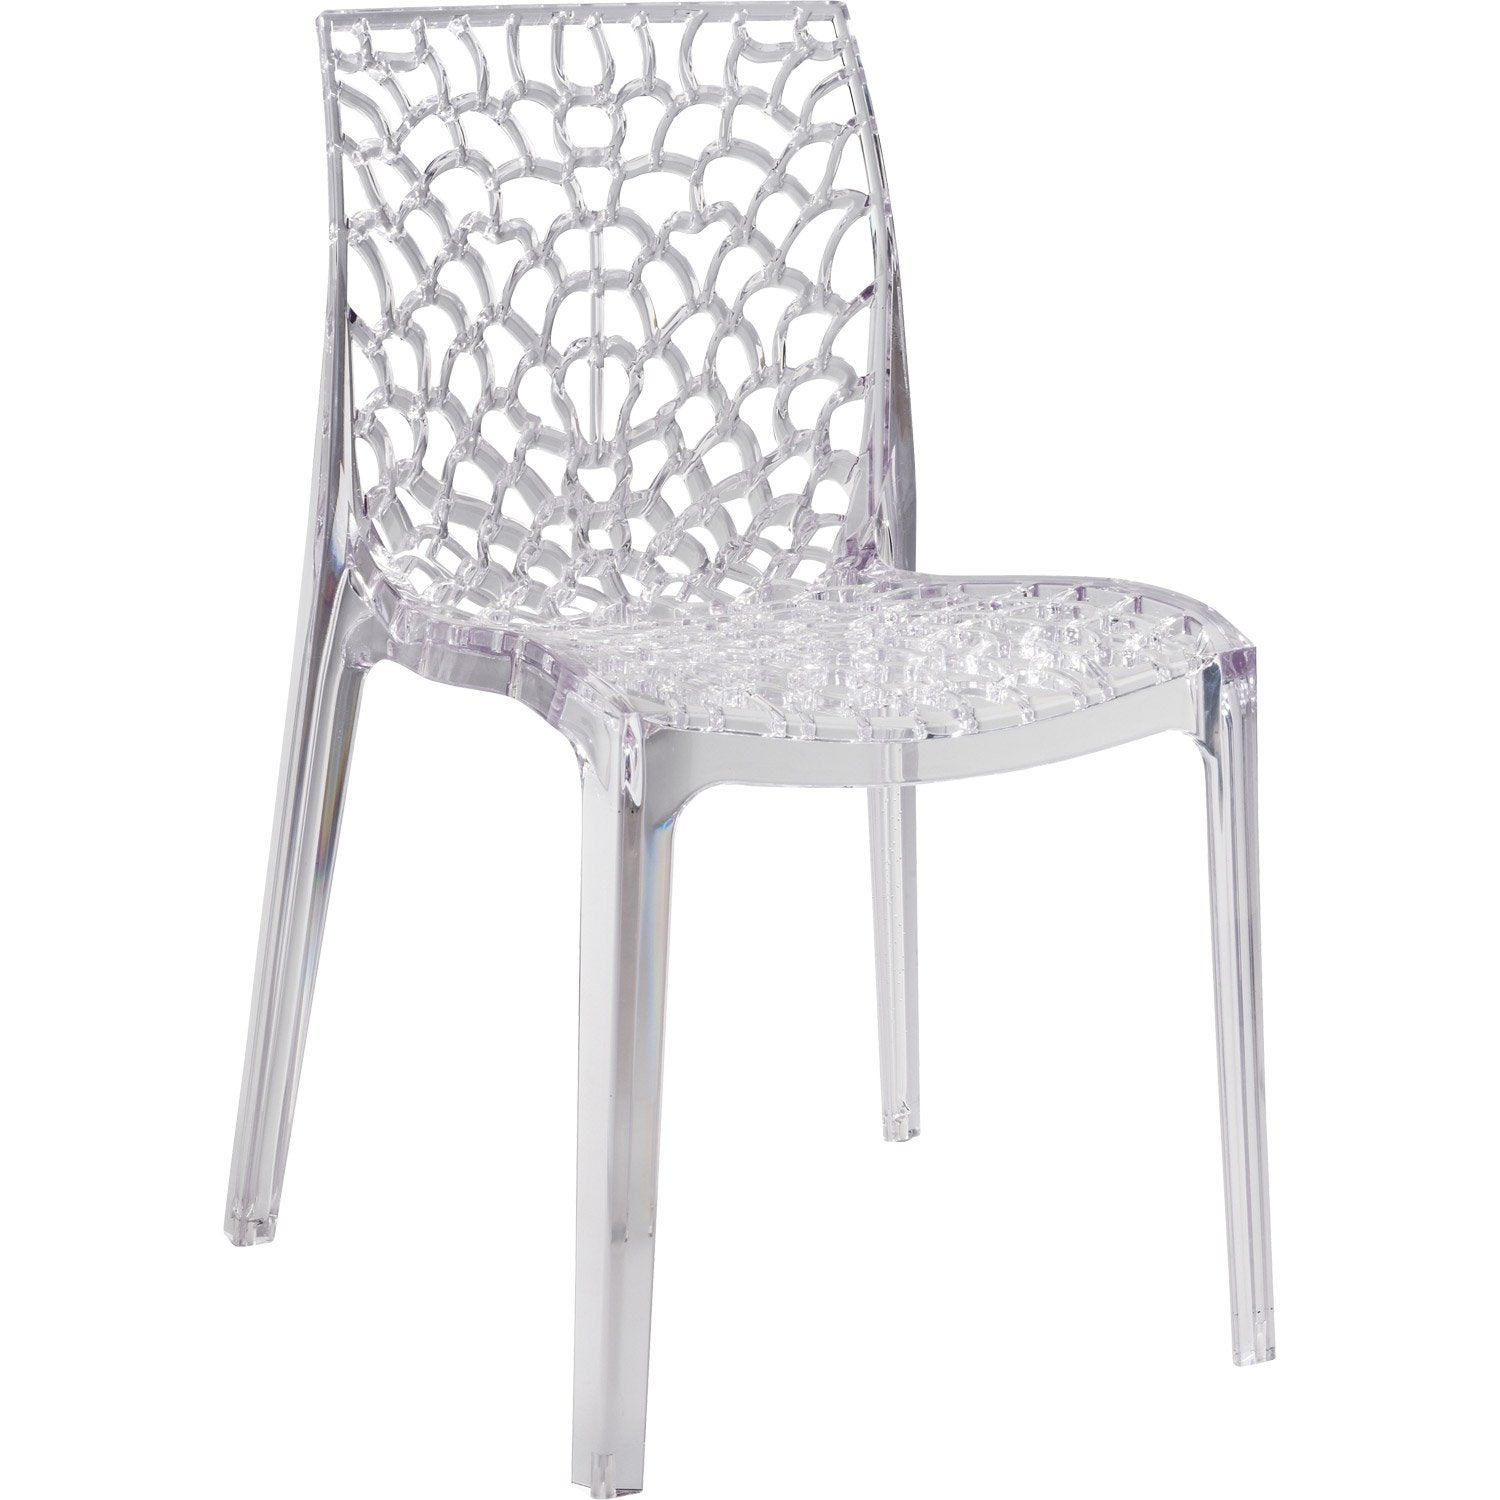 Chaise de jardin en polycarbonate grafik lux transparent for Chaise salle de bain leroy merlin